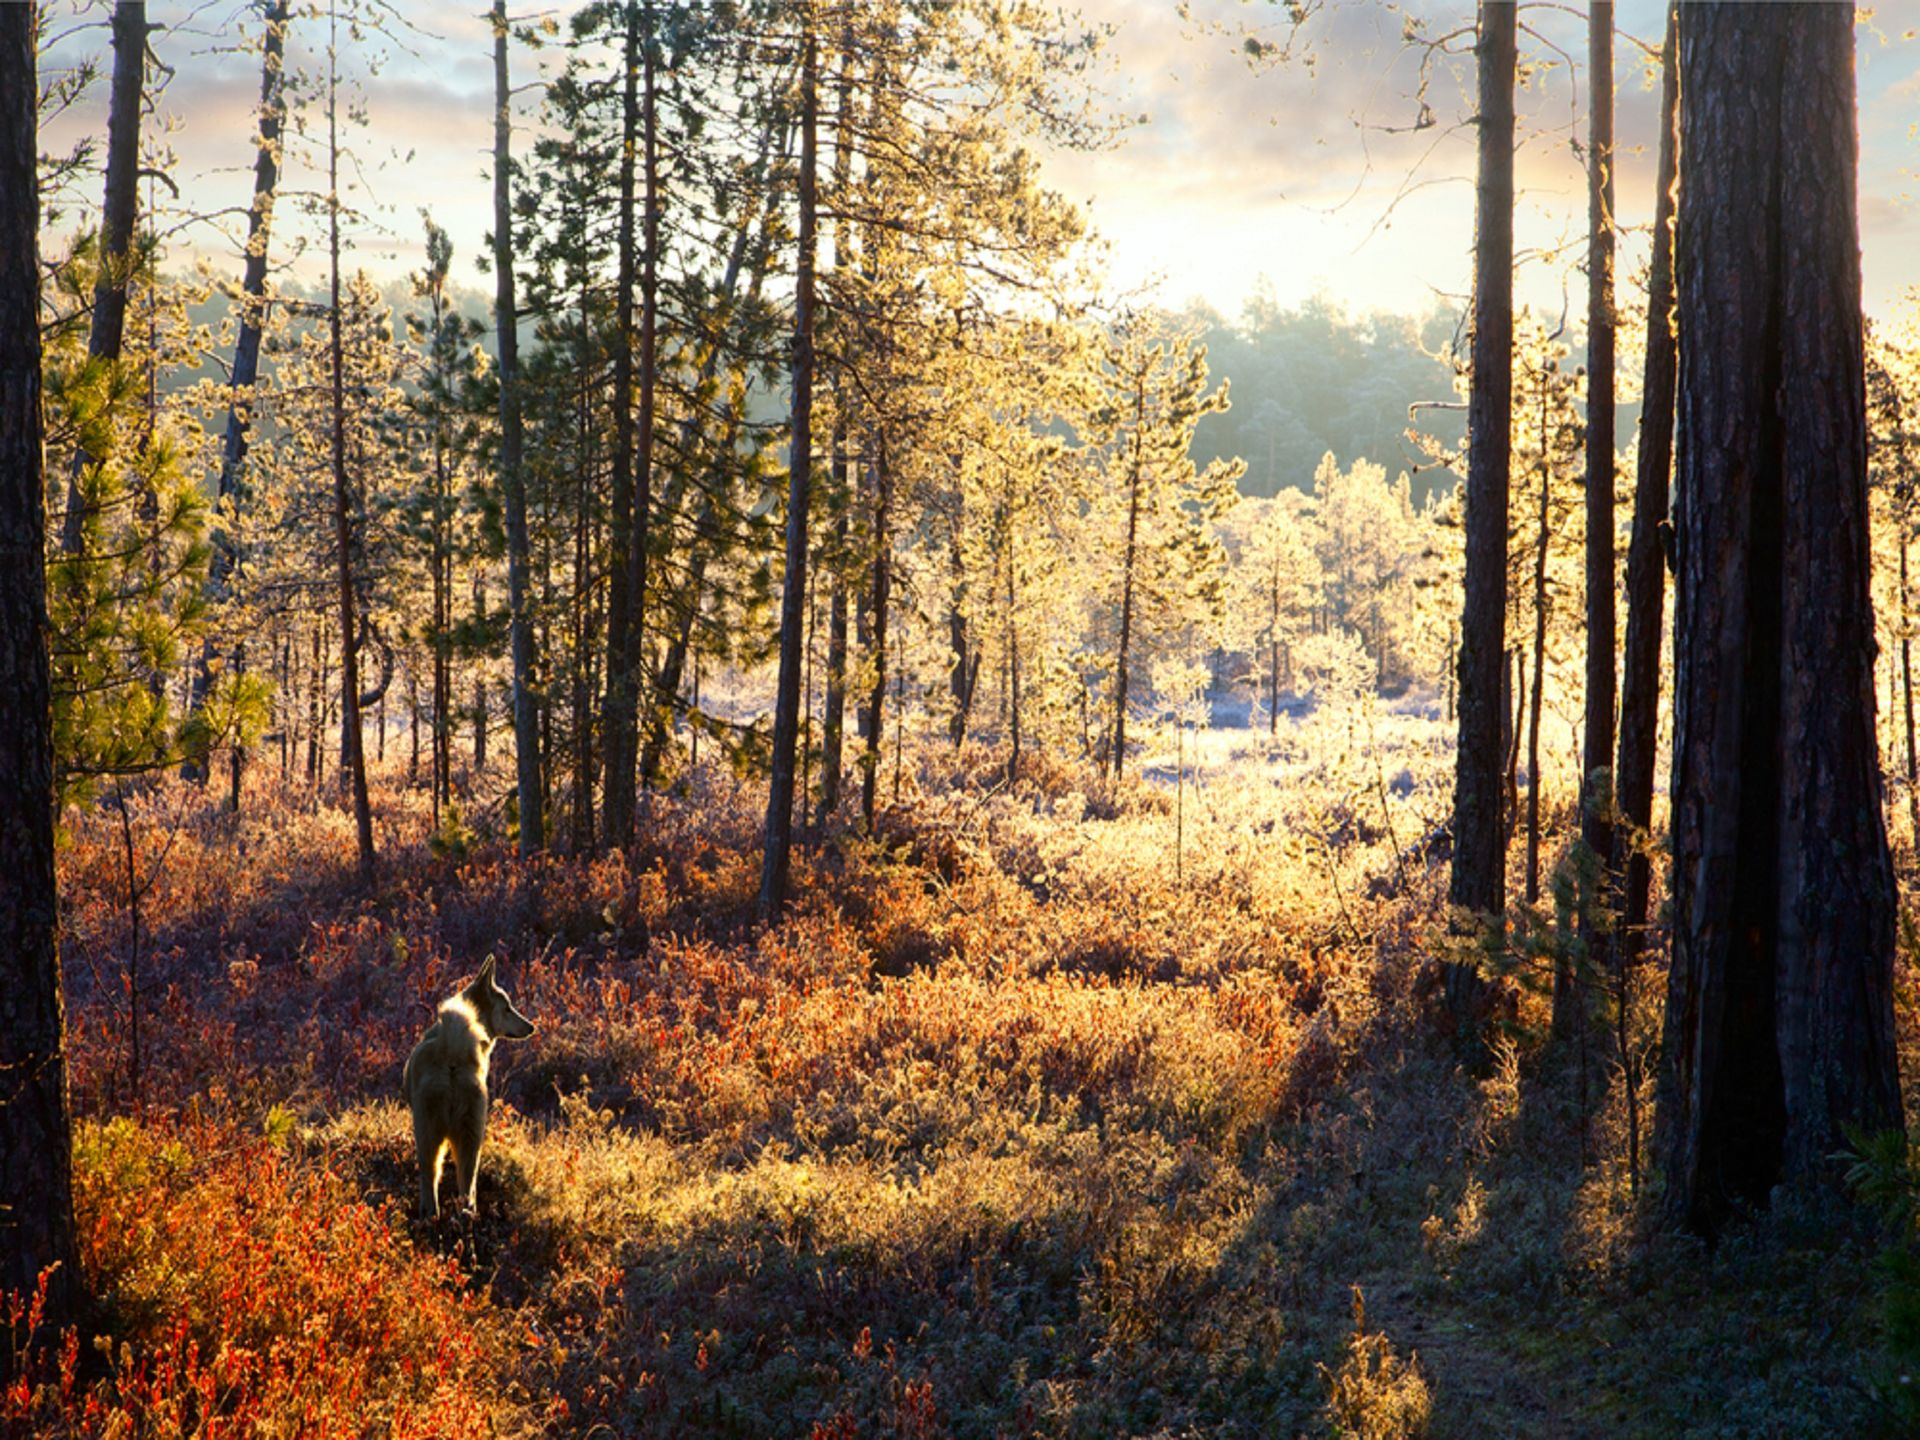 Hunting in beautiful nature and suroundings in Lapland